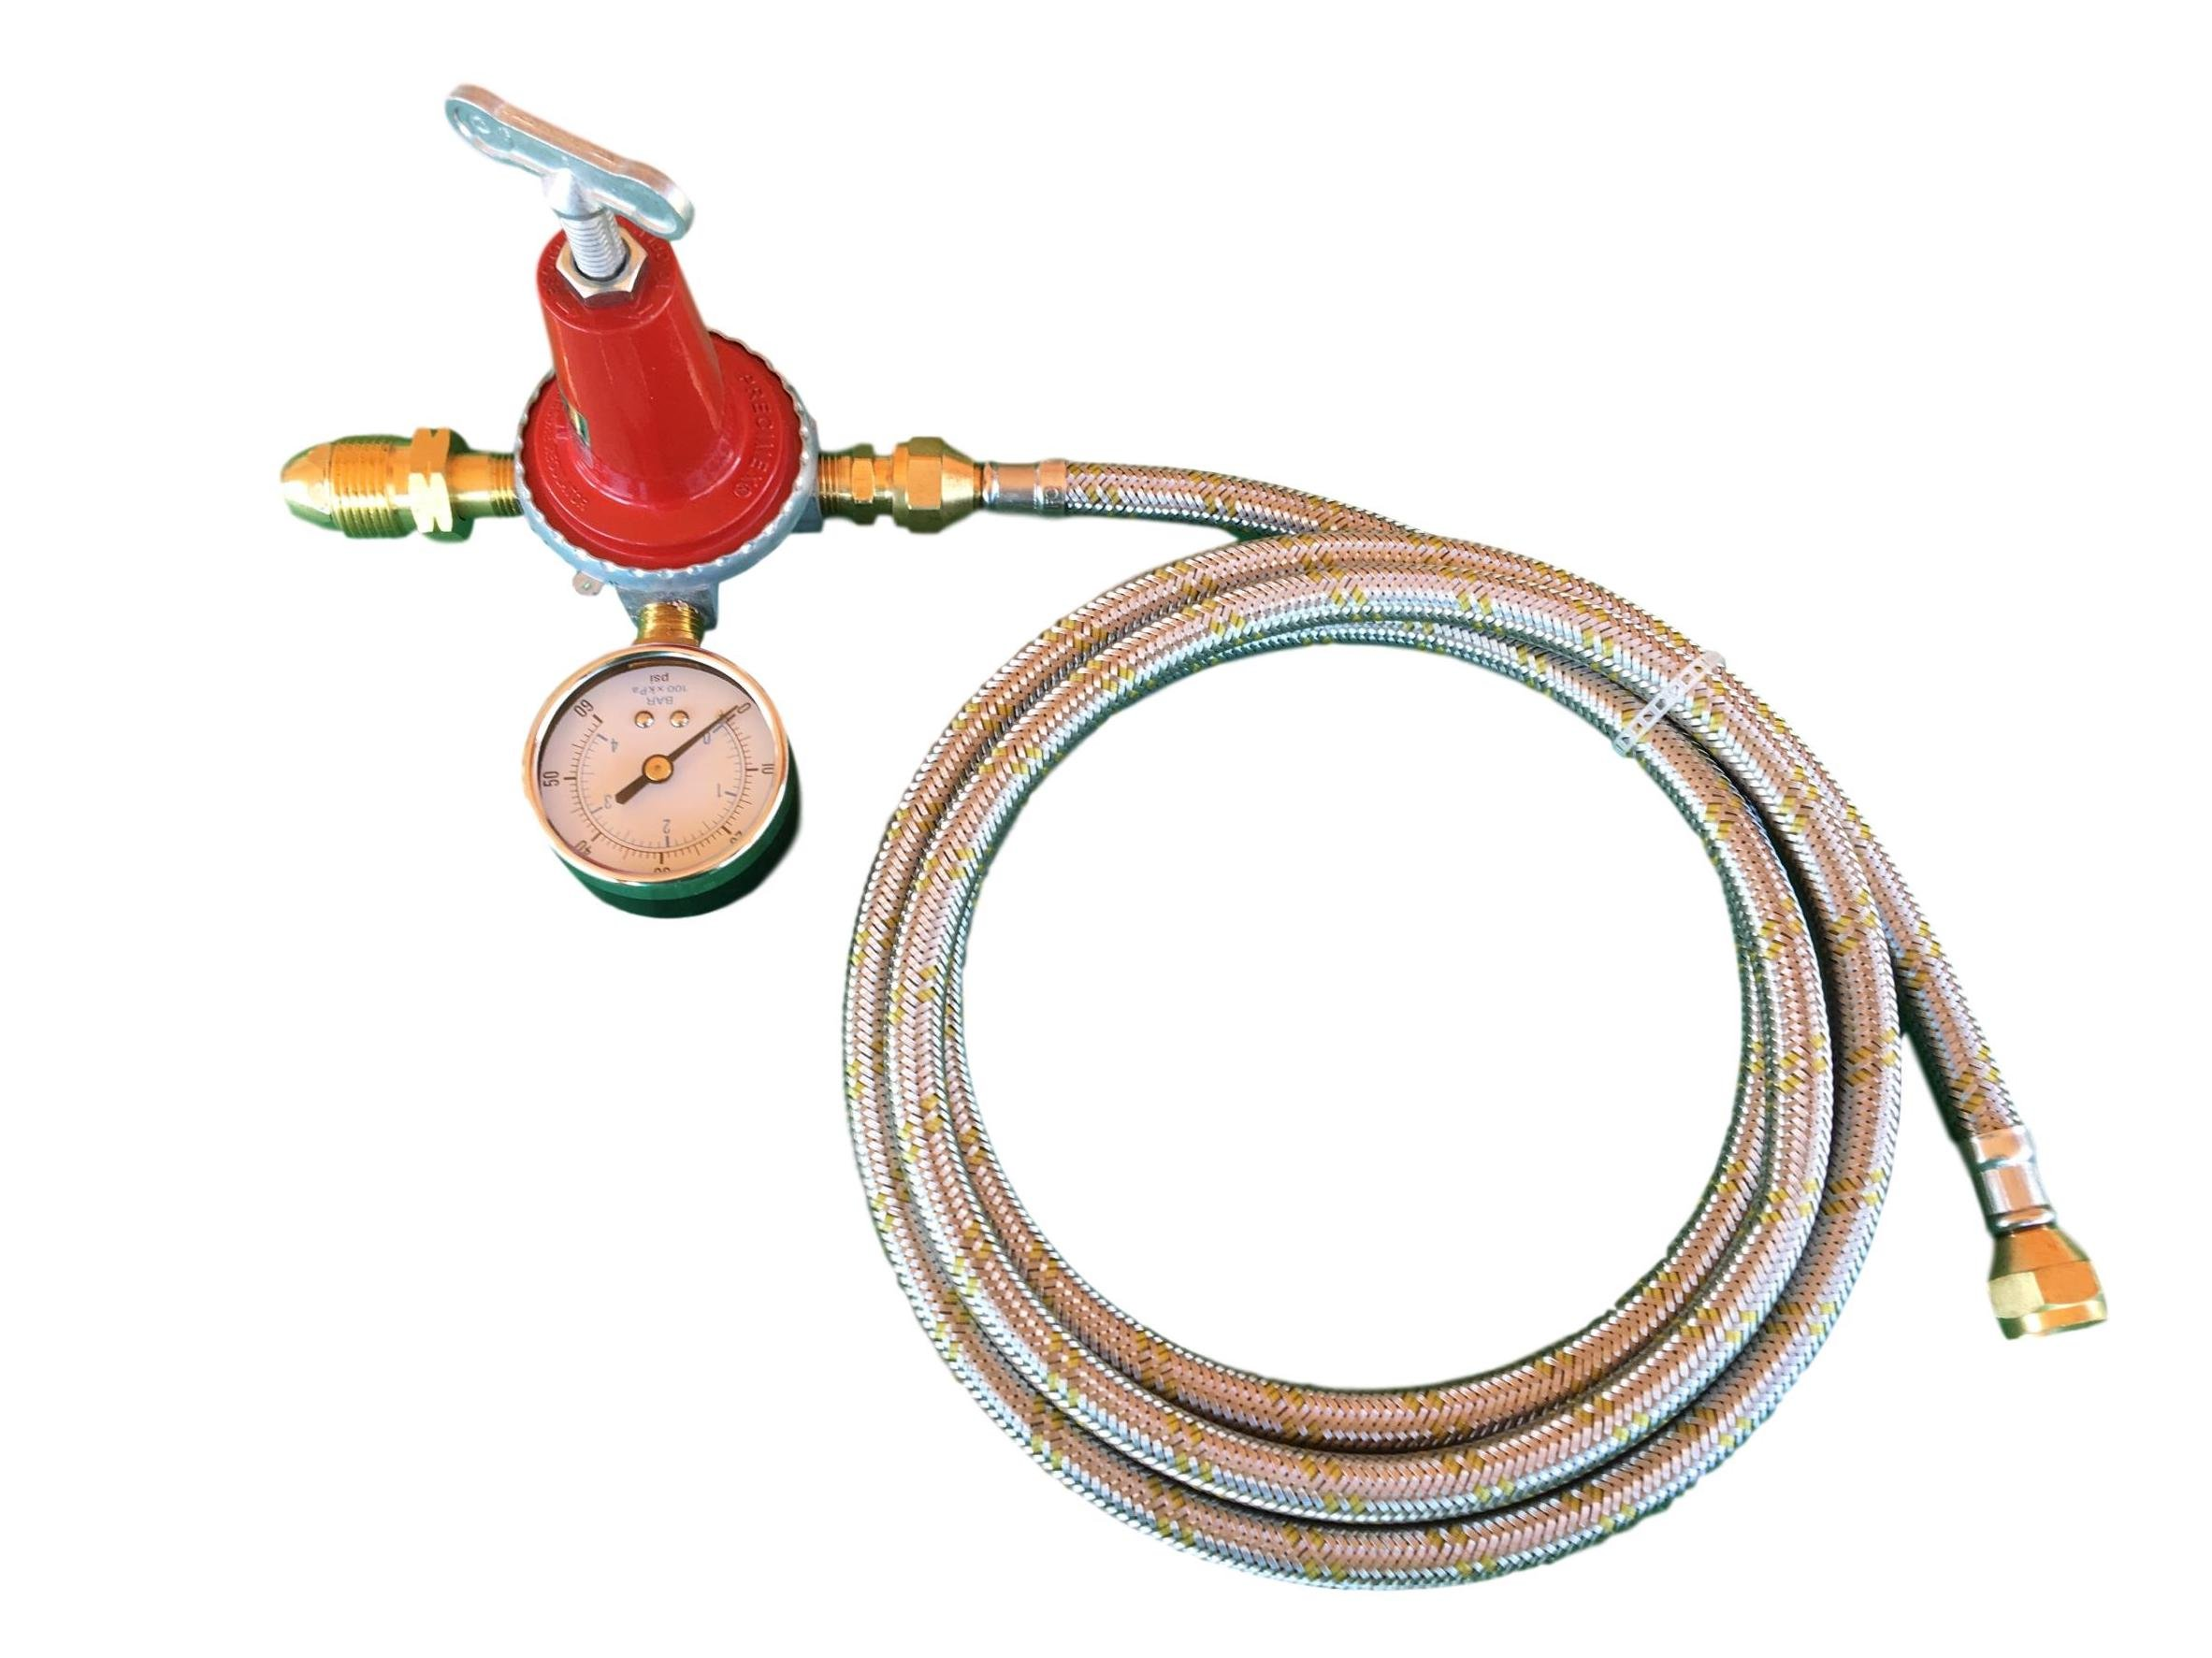 Adjustable 0 to 40psi Propane Regulator POL LP Gas Gauge and 12ft Stainless Steel Hose